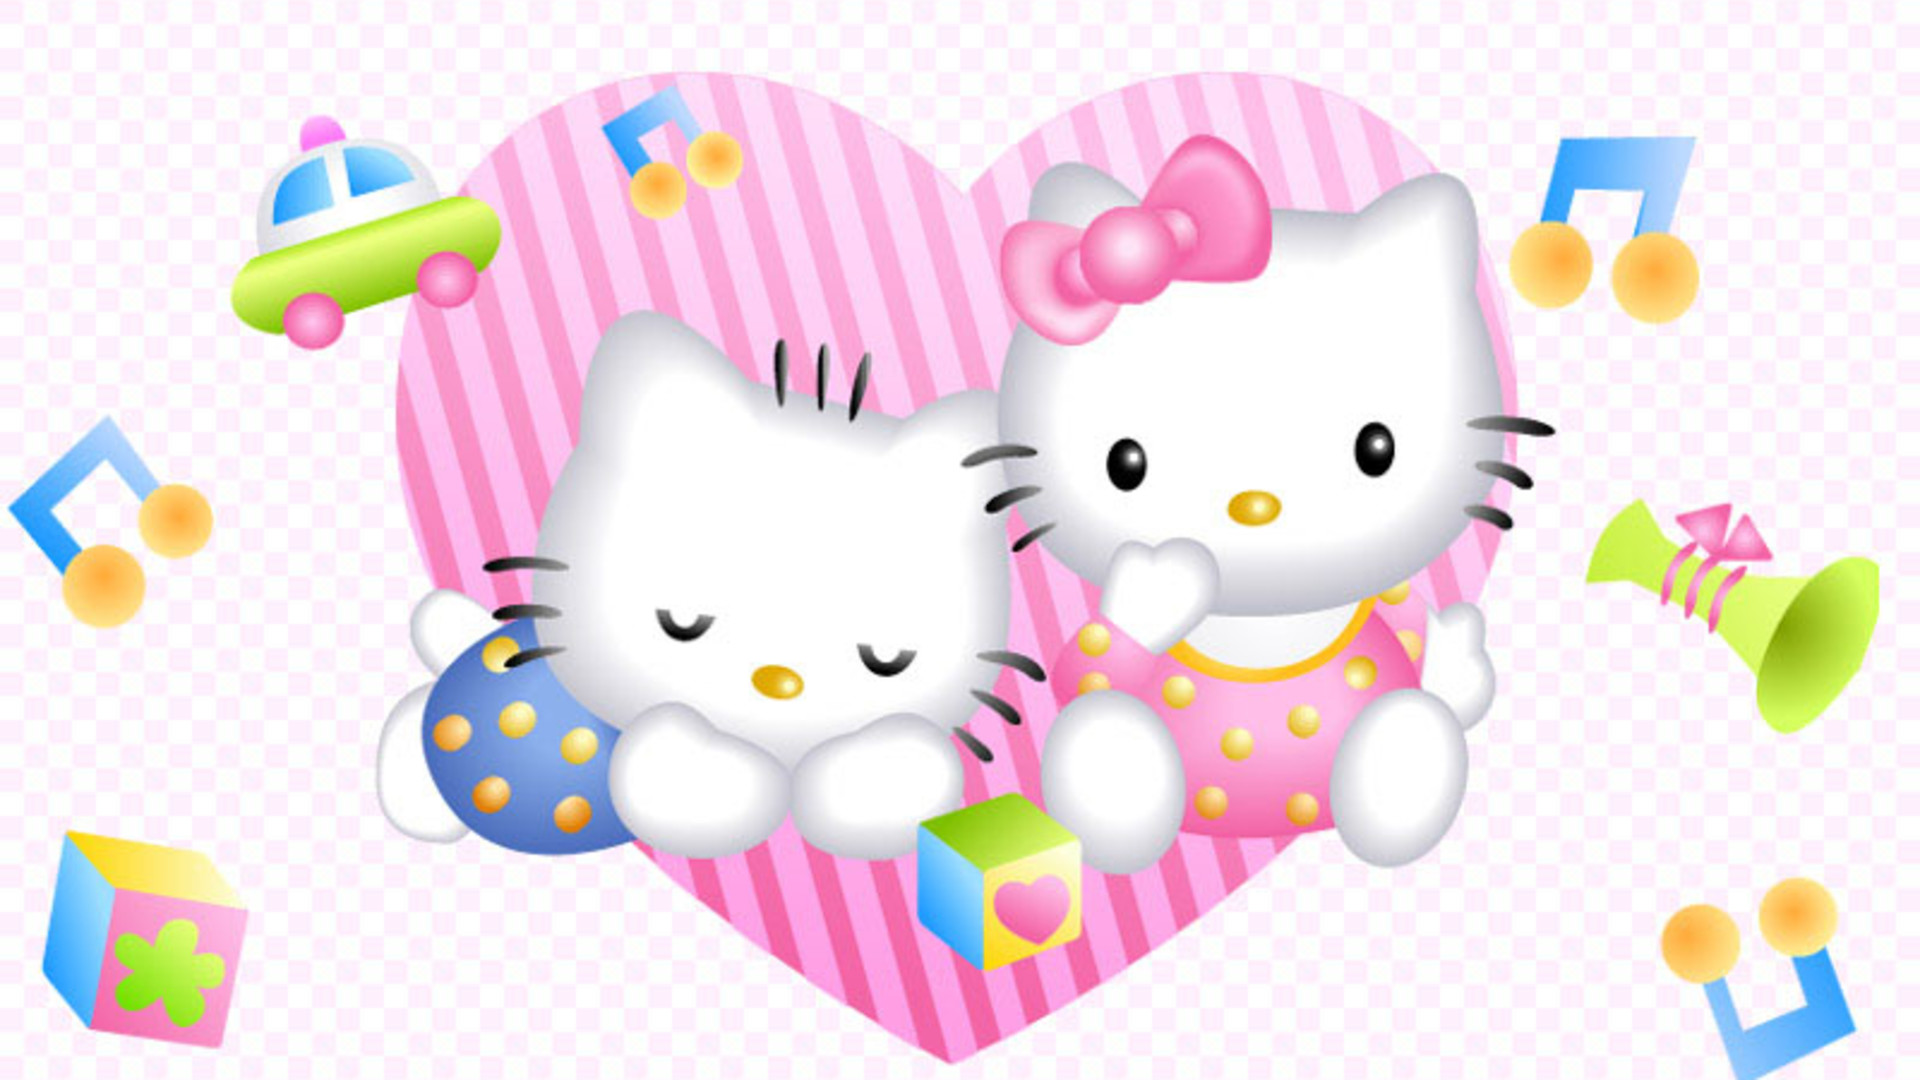 download Hello Kitty Wallpaper Desktop 17406 Wallpaper 1920x1080